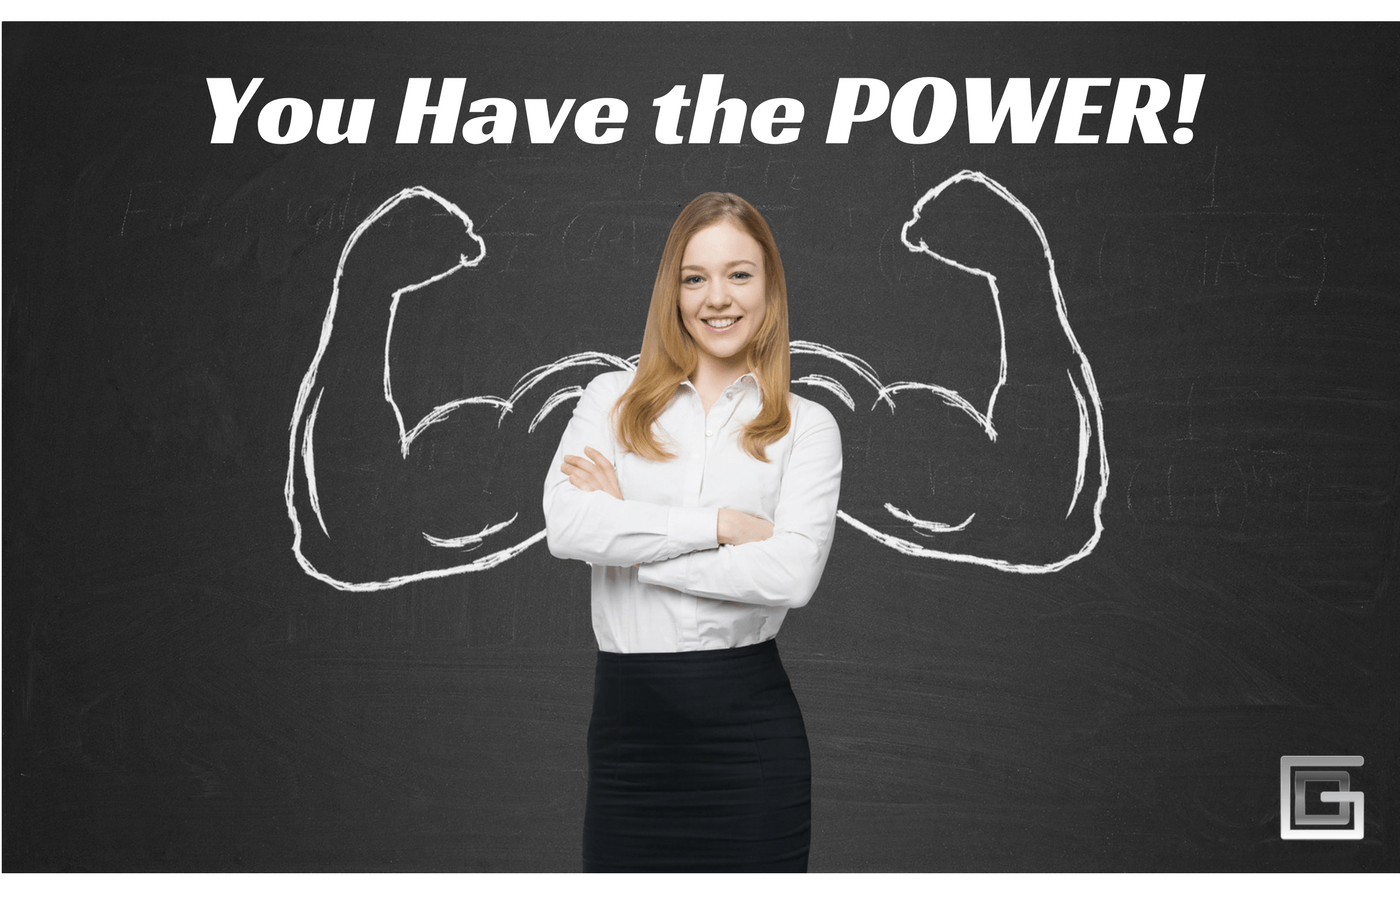 You have power in your Authority